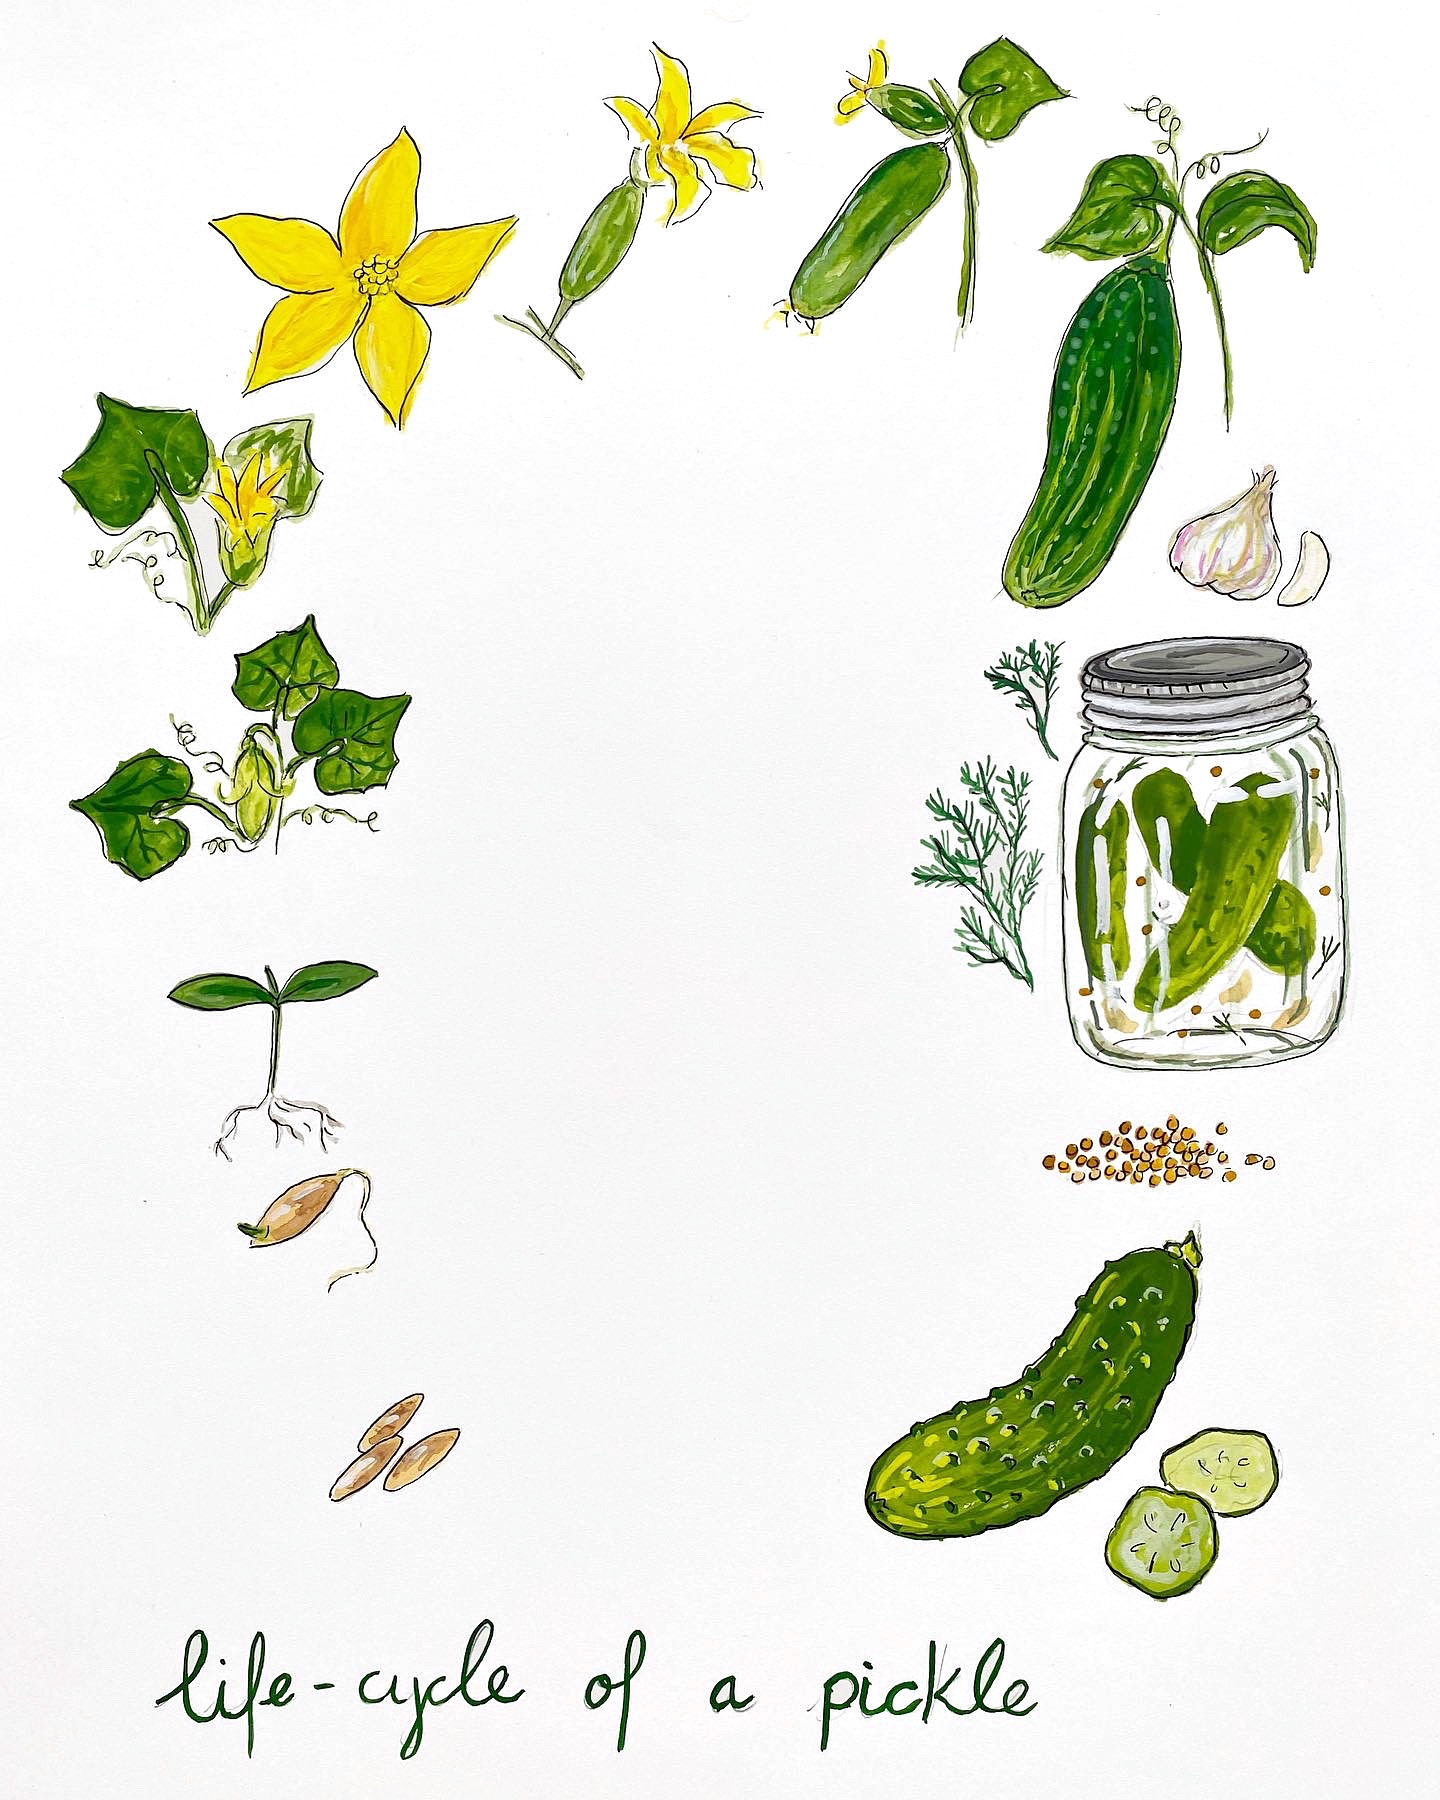 Life Cycle of a Pickle